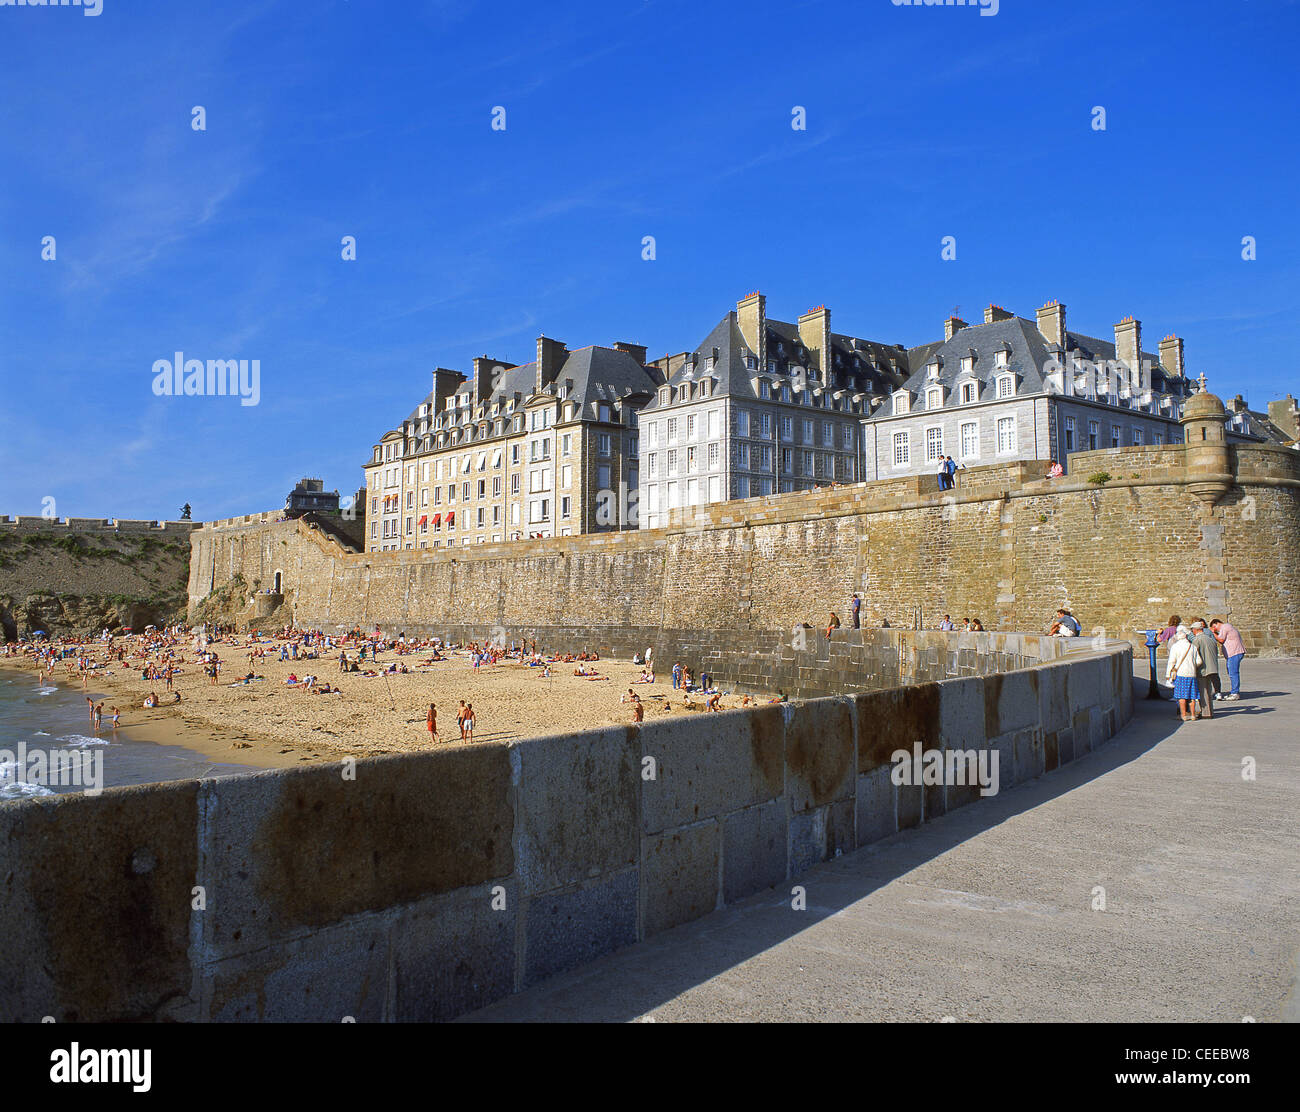 st malo beach stock photos st malo beach stock images alamy. Black Bedroom Furniture Sets. Home Design Ideas